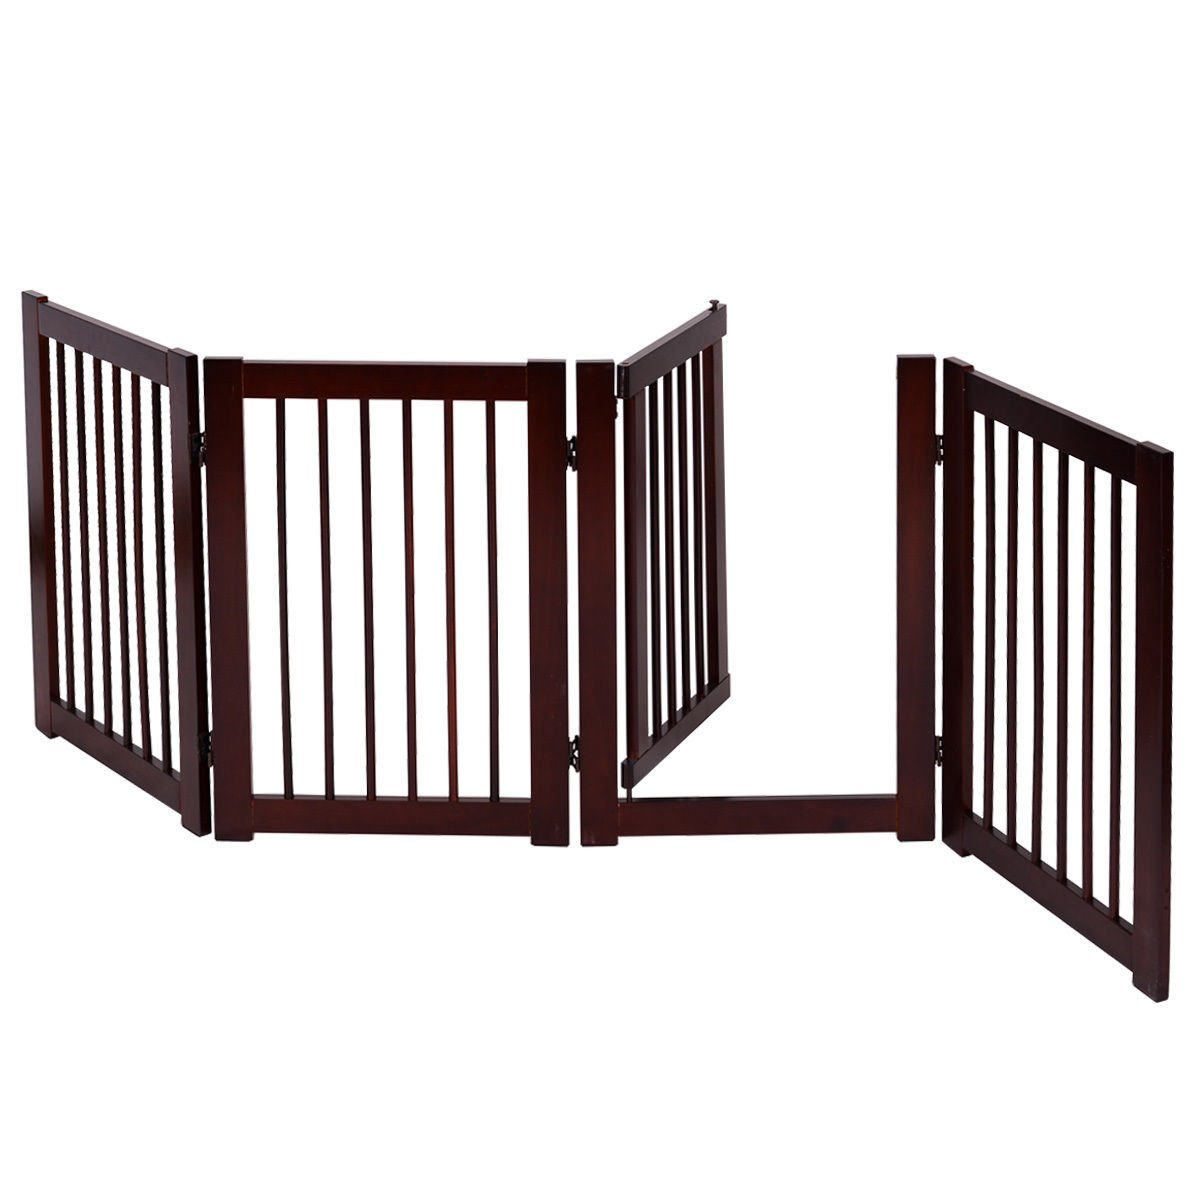 New MTN-G 30 Configurable Folding Free Standing 4 Panel Wood Pet Dog Safety Fence w Gate